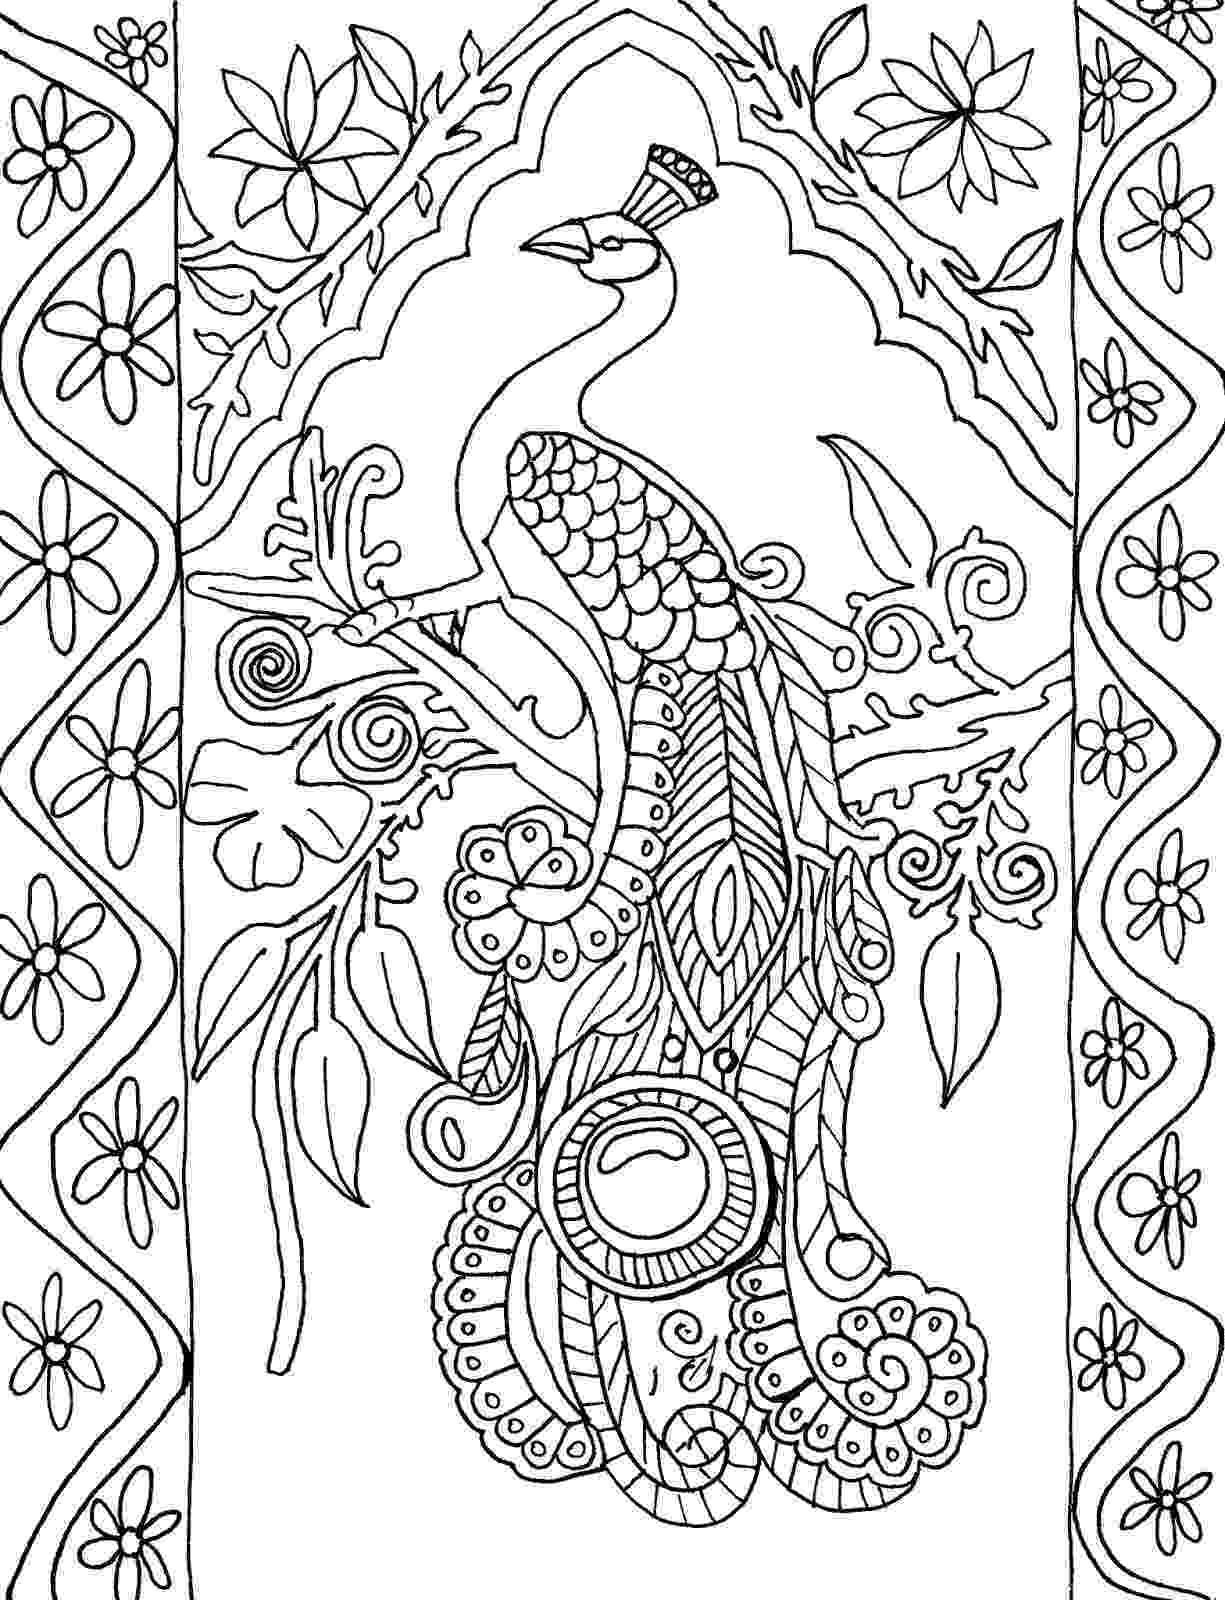 colouring pictures of peacock peacock coloring pages to download and print for free of peacock pictures colouring